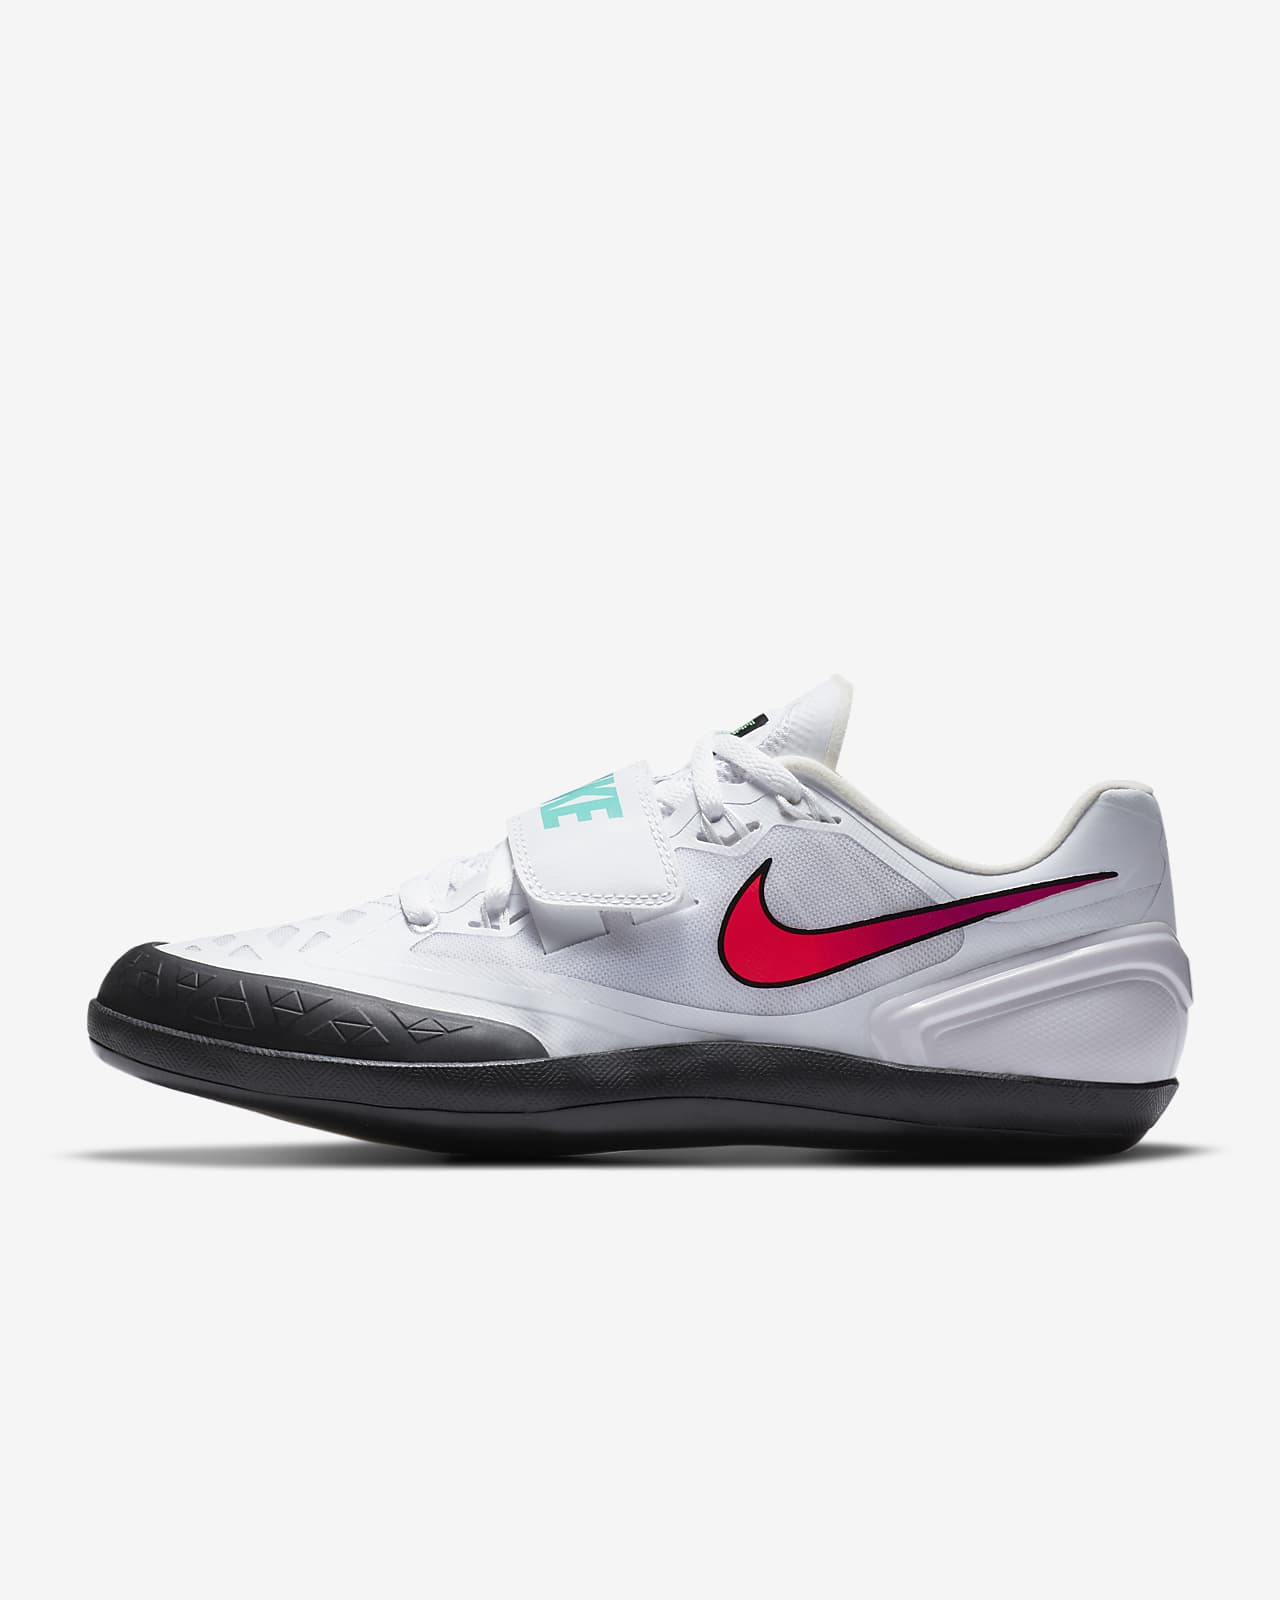 Nike Zoom Rotational 6 Track & Field Throwing Shoes